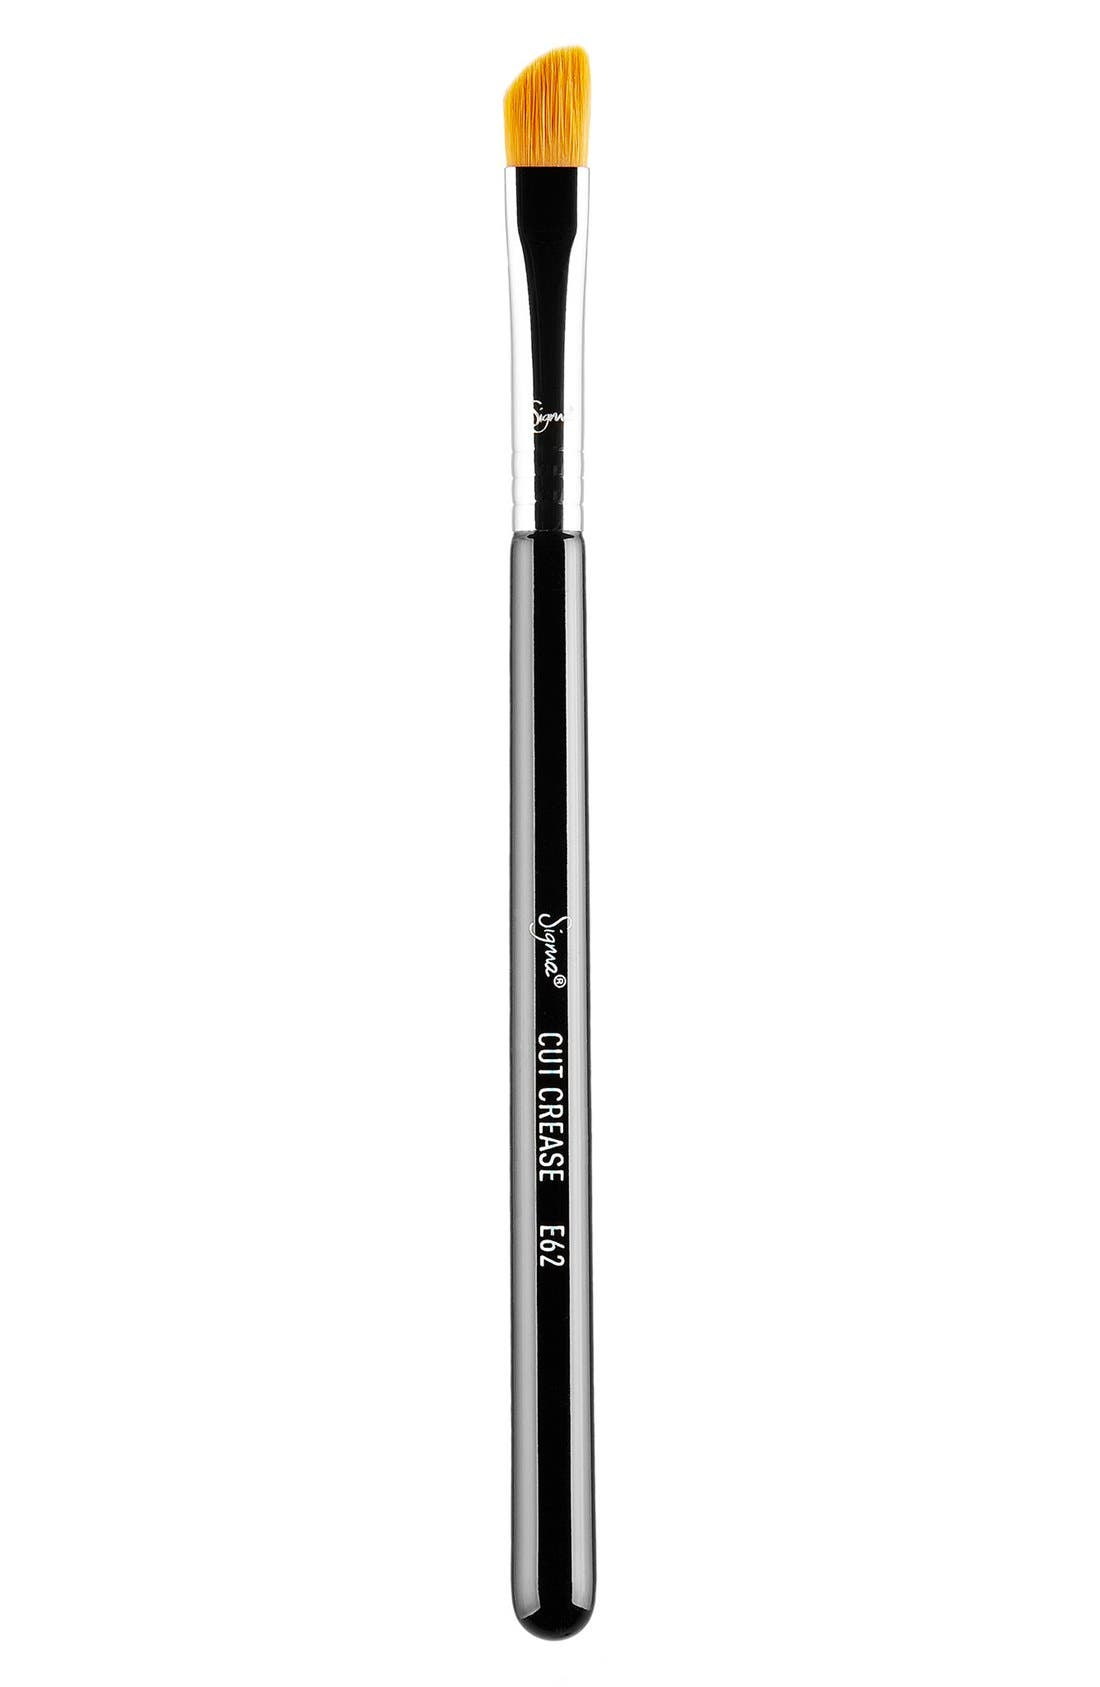 E62 Cut Crease Brush,                             Main thumbnail 1, color,                             NO COLOR